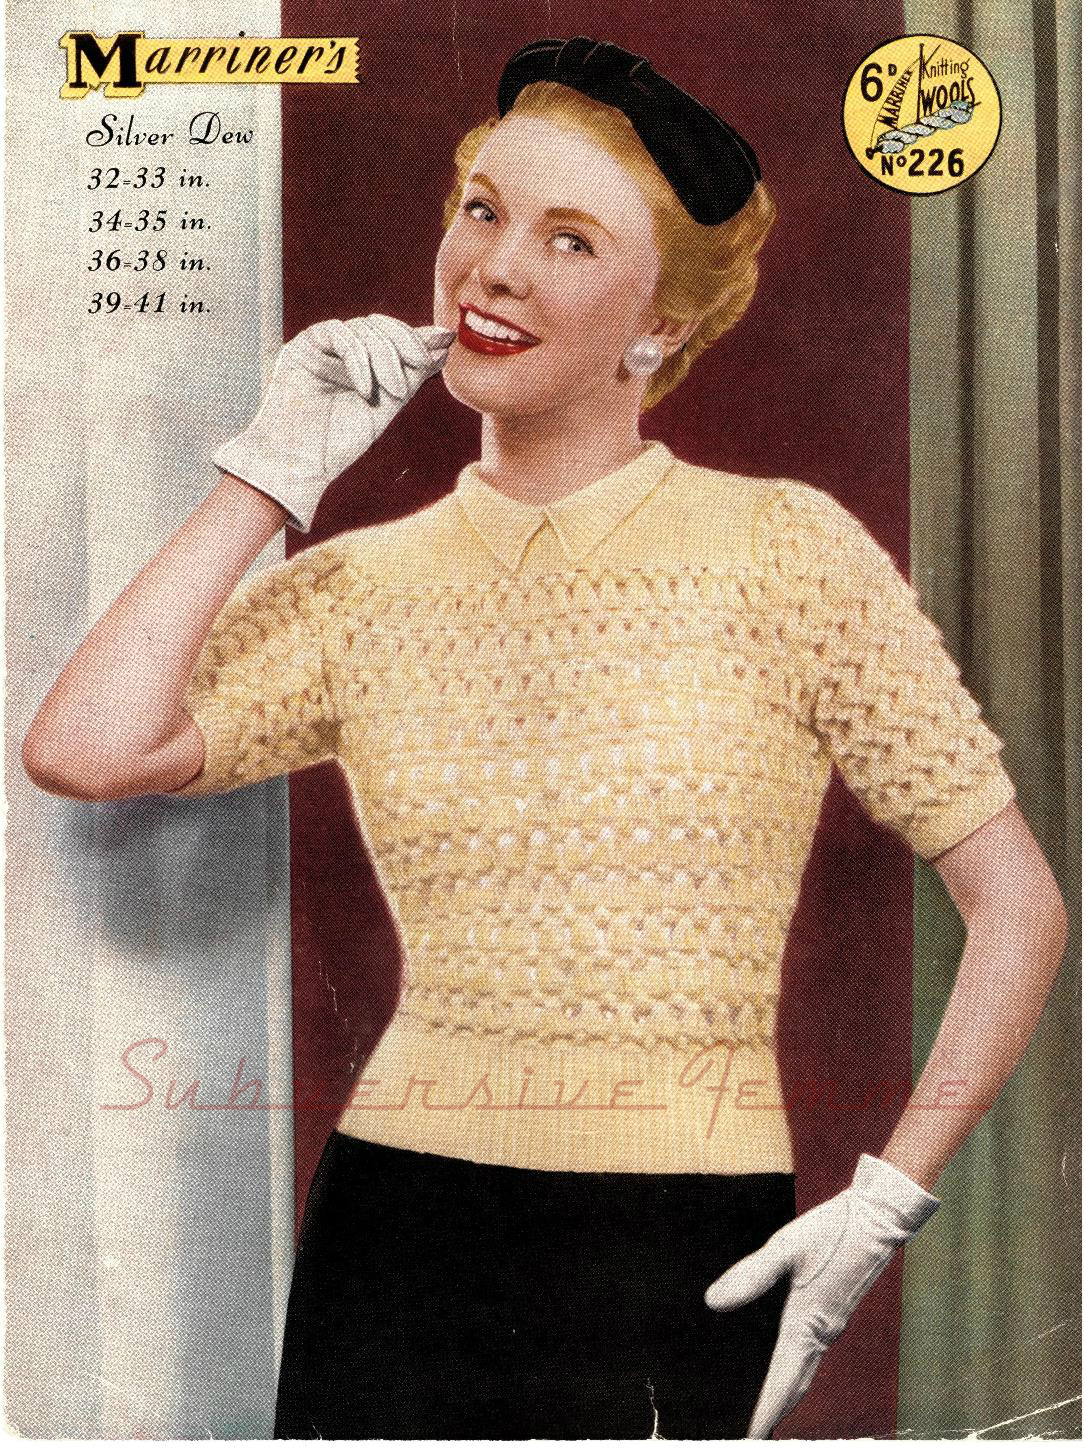 Free Vintage Knitting Patterns 1950s : The Vintage Pattern Files: 1950s Knitting - Silver Dew Sweater